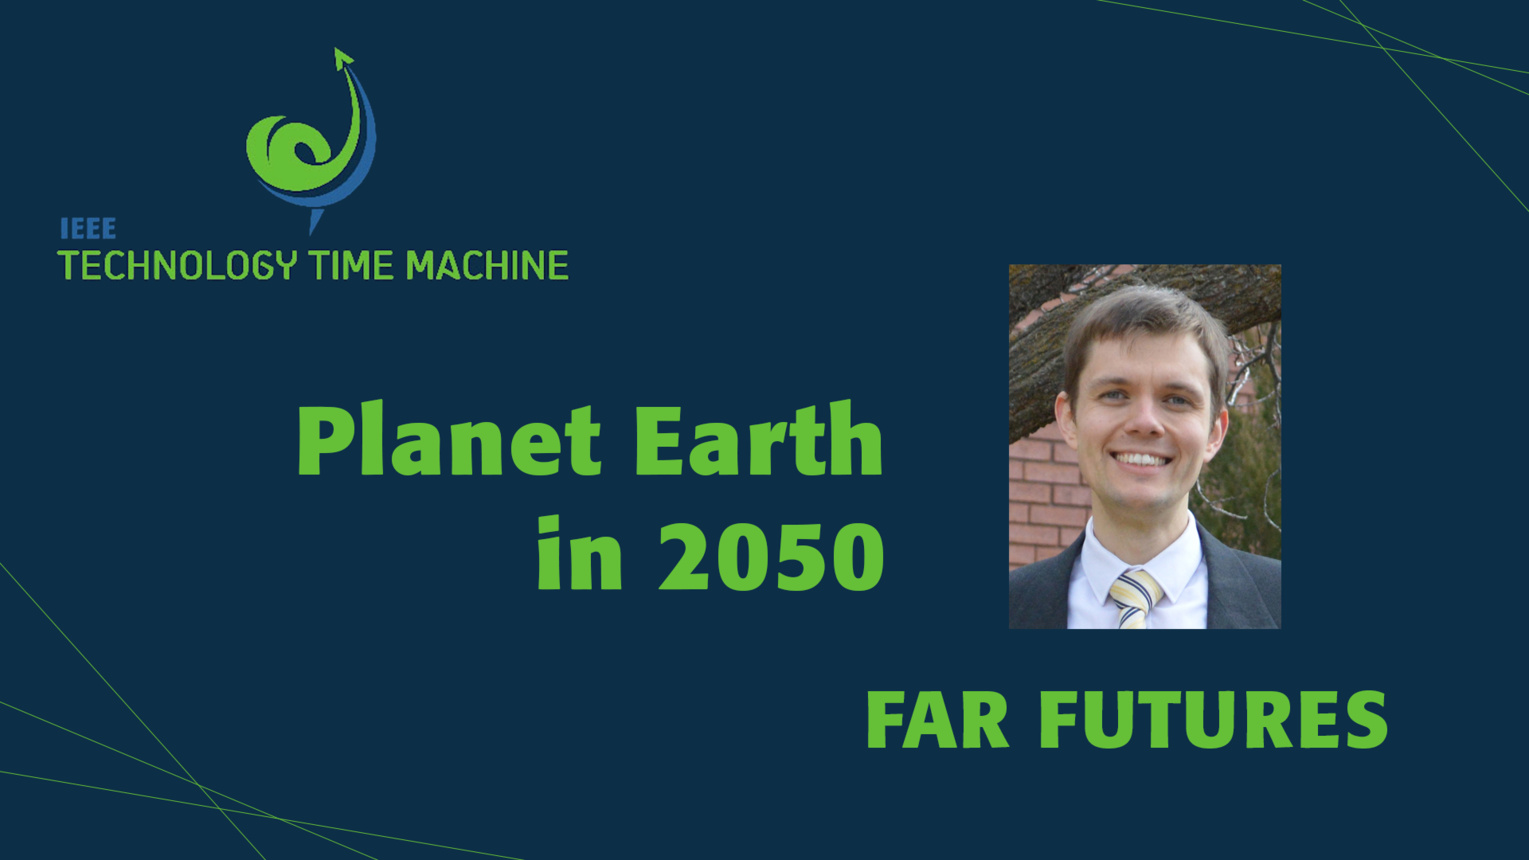 Conrad Rosenbrock: Far Futures Panel - TTM 2018